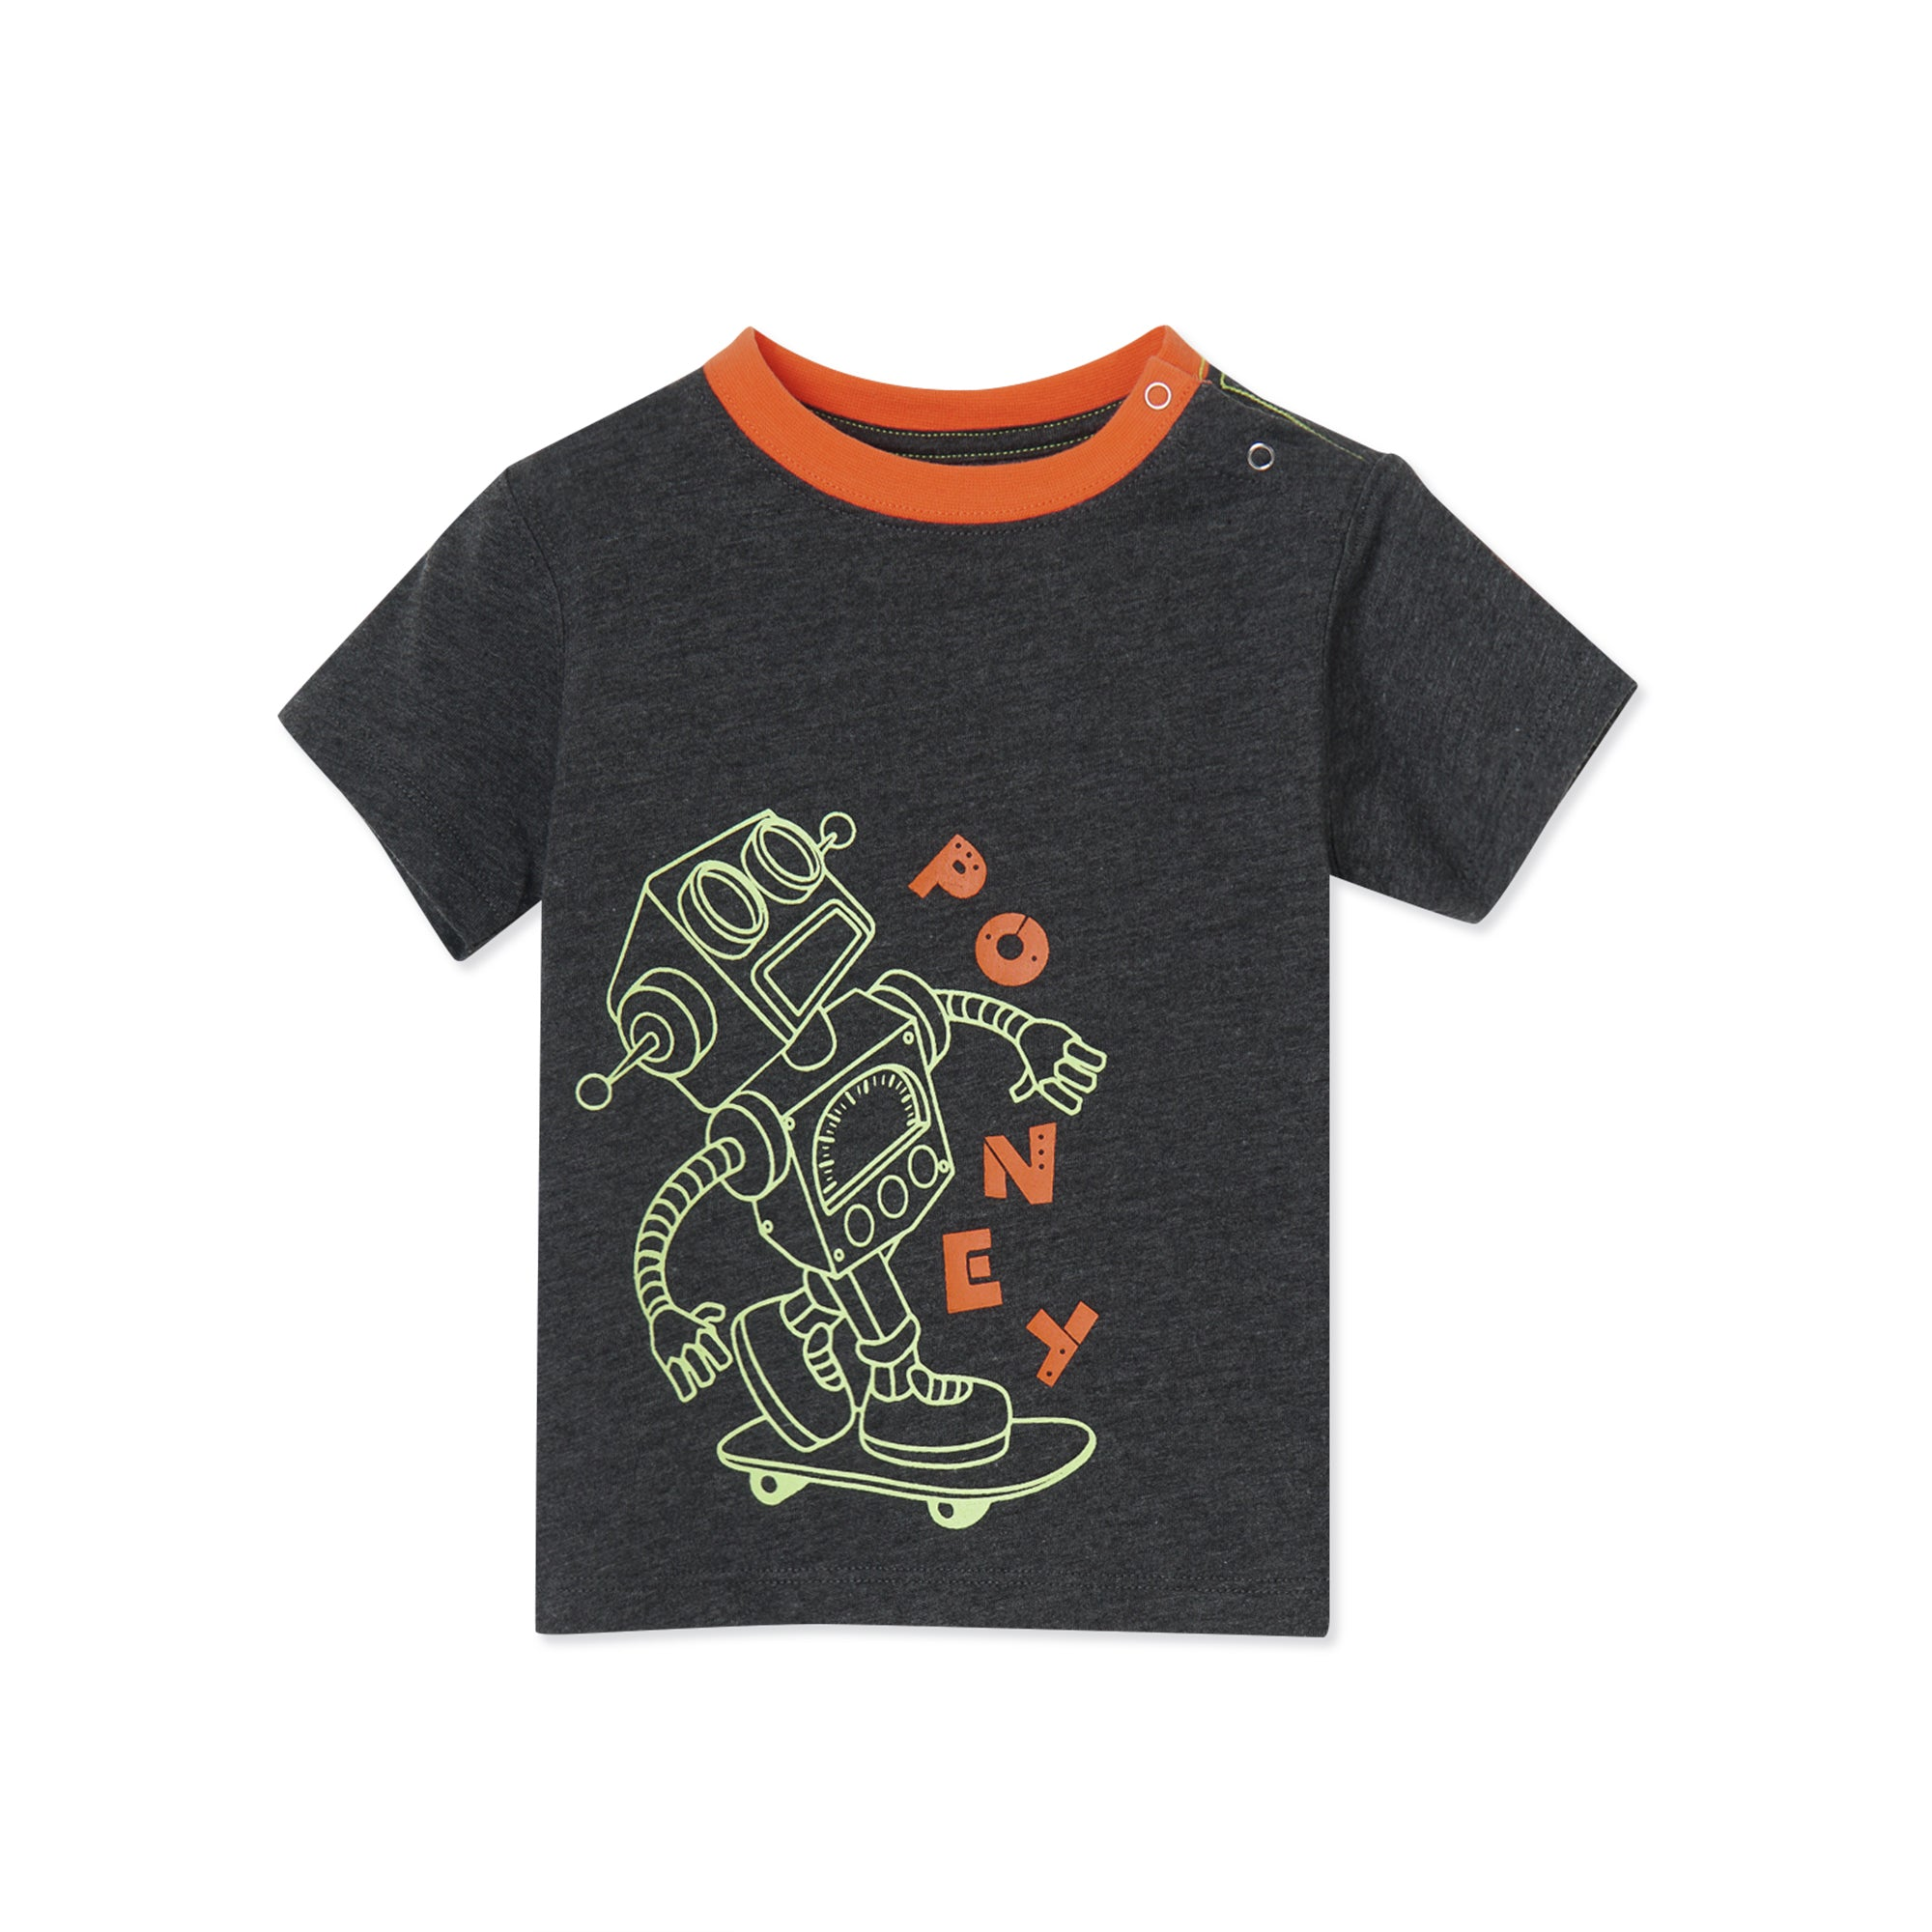 Poney Boys S/Sleeve Tee 8501 (6mths-12yrs)